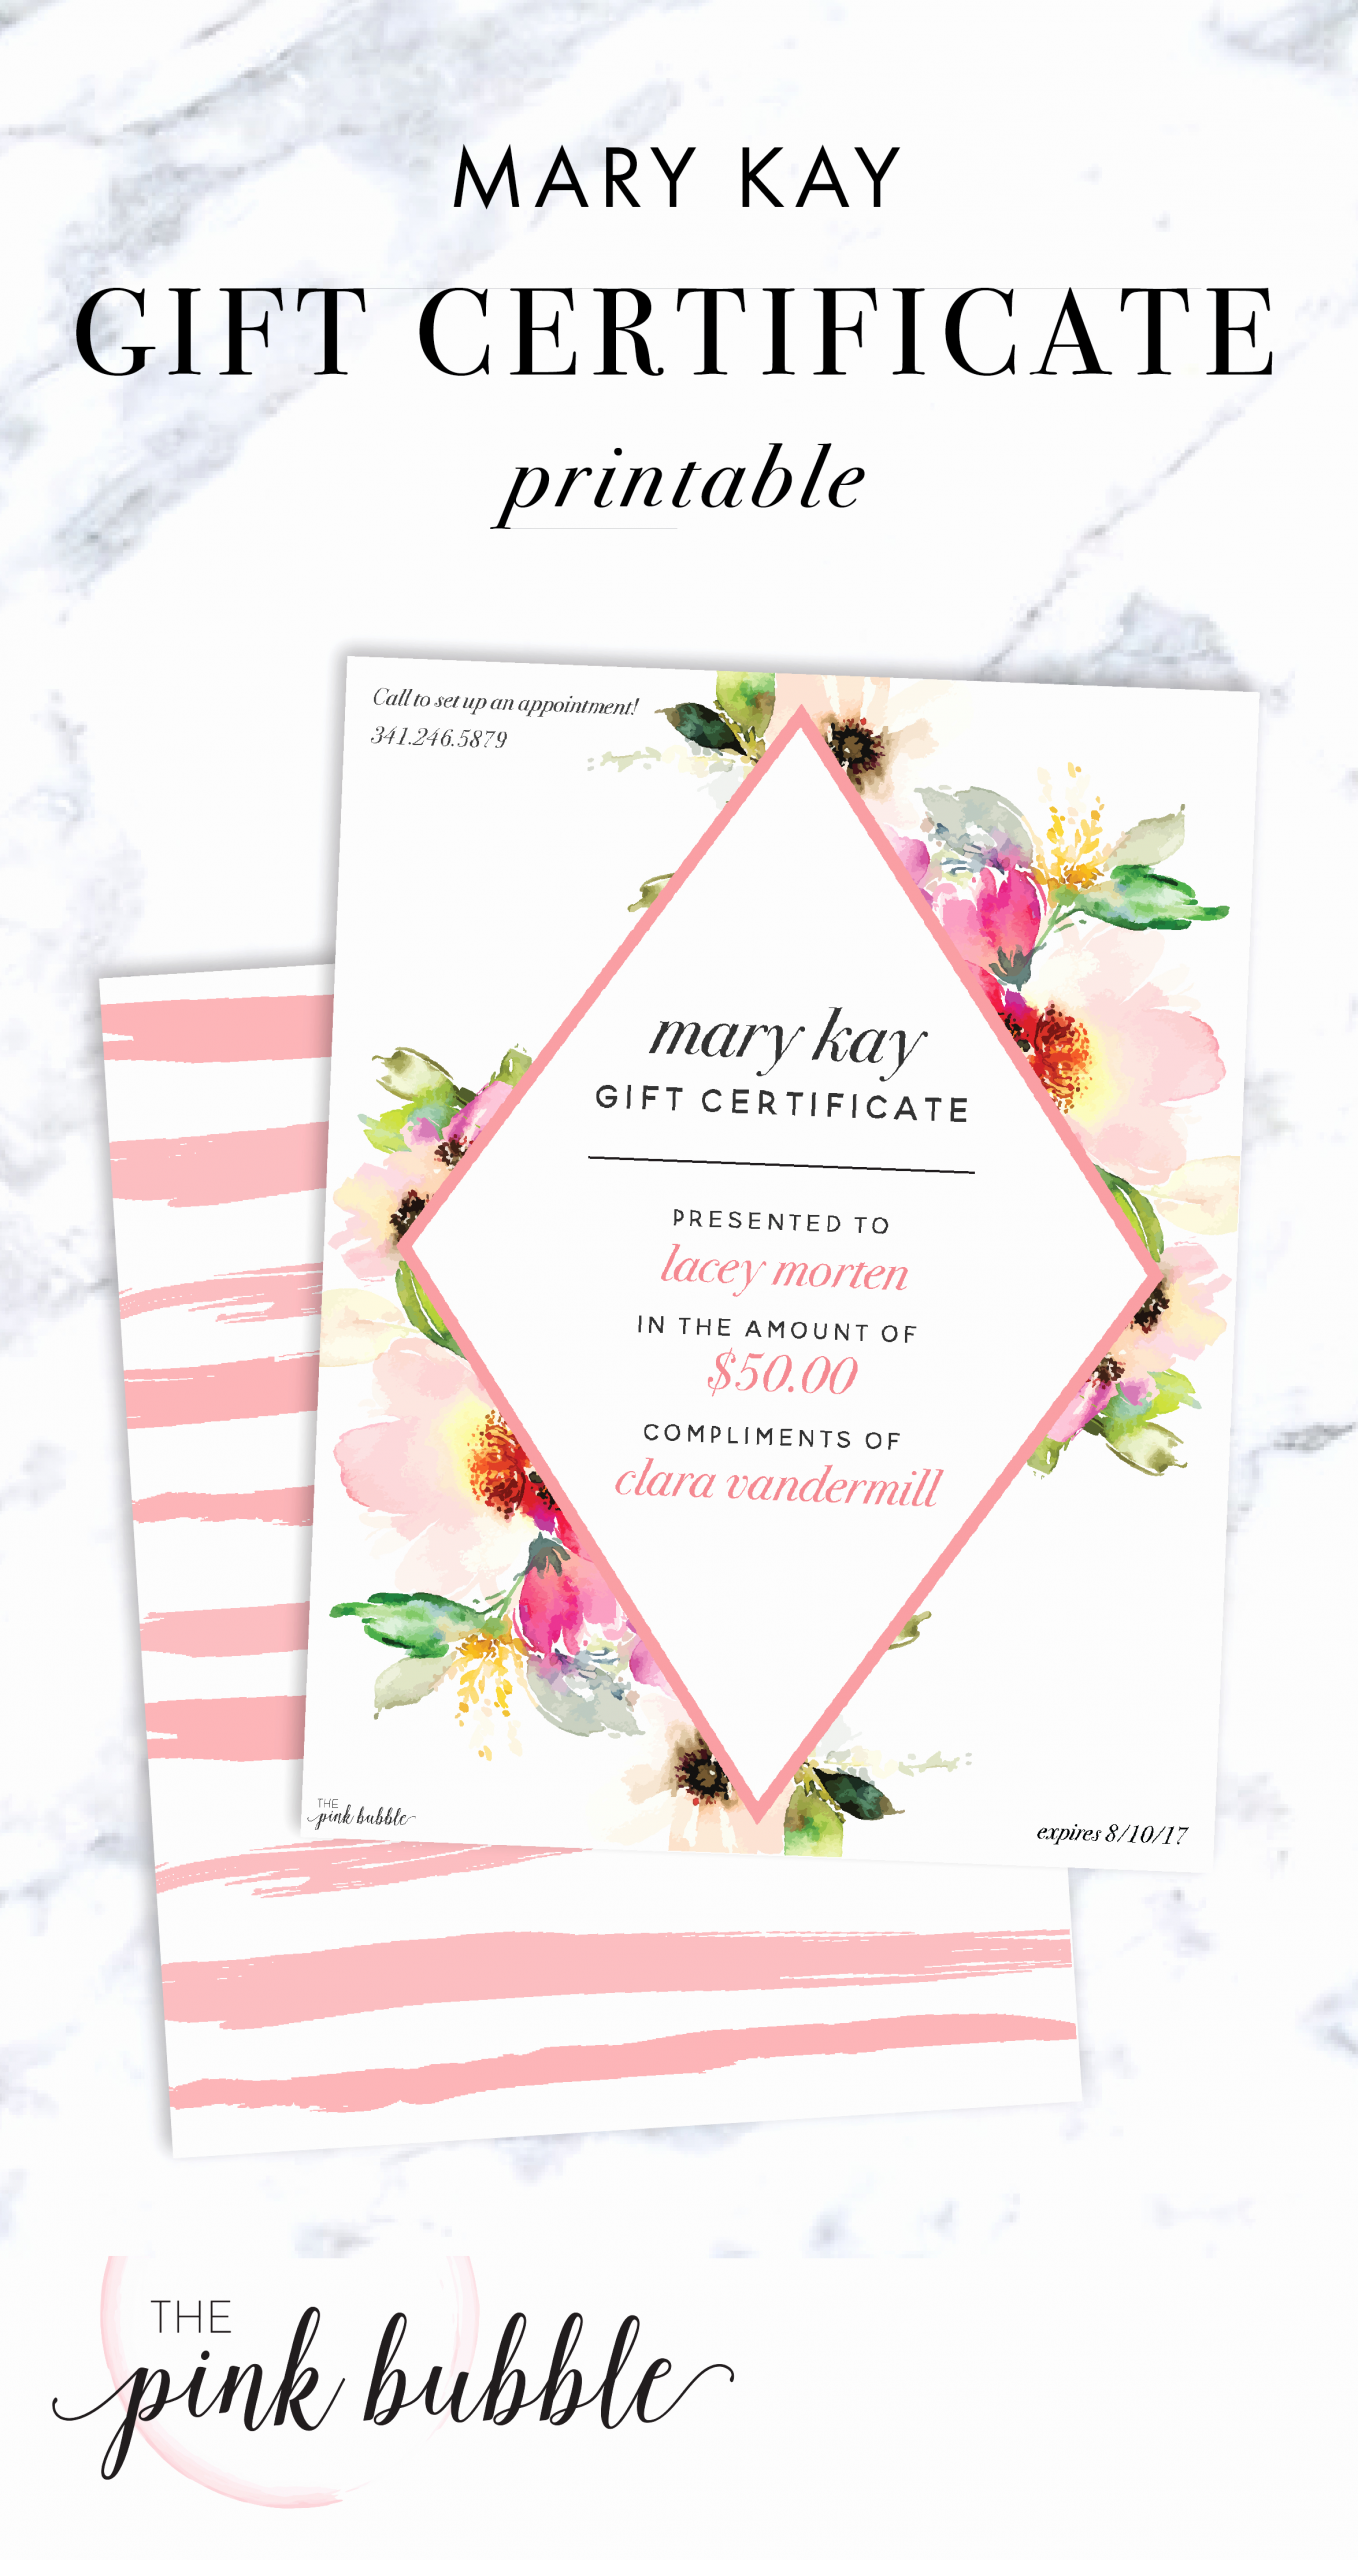 Mary Kay Gift Certificate Template Elegant Mary Kay Gift Certificate Find It Only at